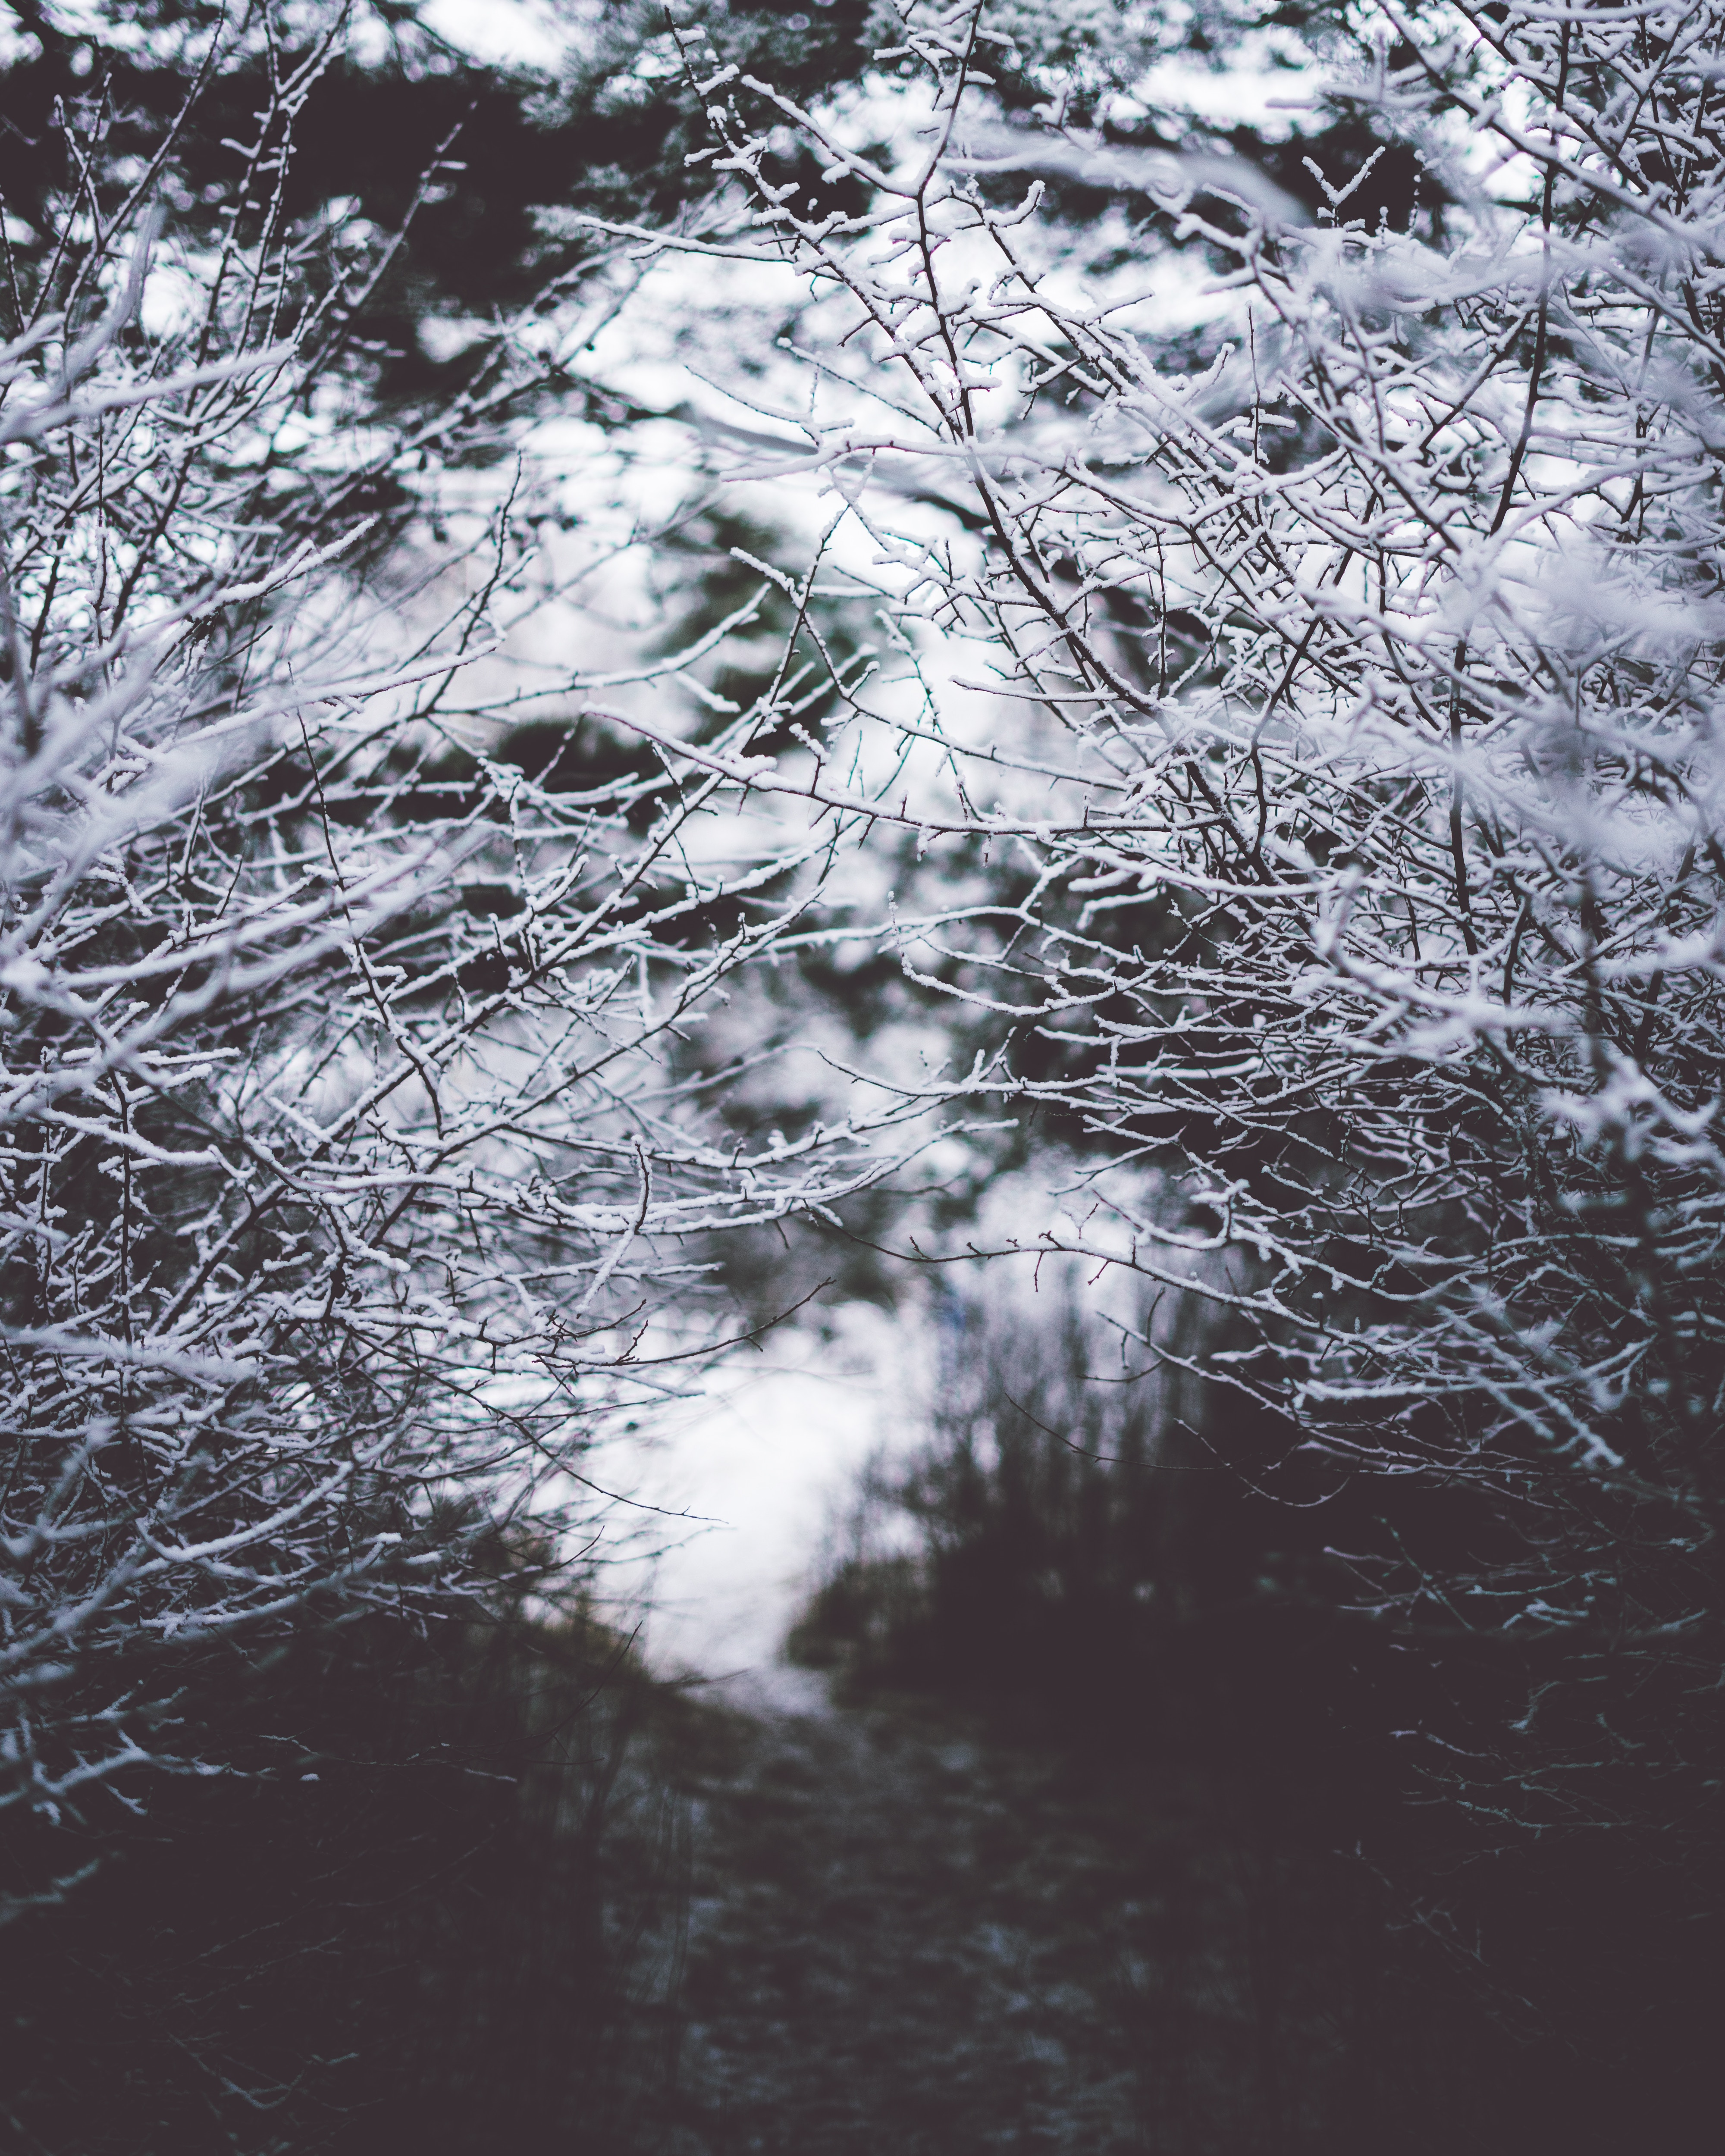 150066 download wallpaper Nature, Branches, Frost, Hoarfrost, Snow, Fog, Blur, Smooth screensavers and pictures for free